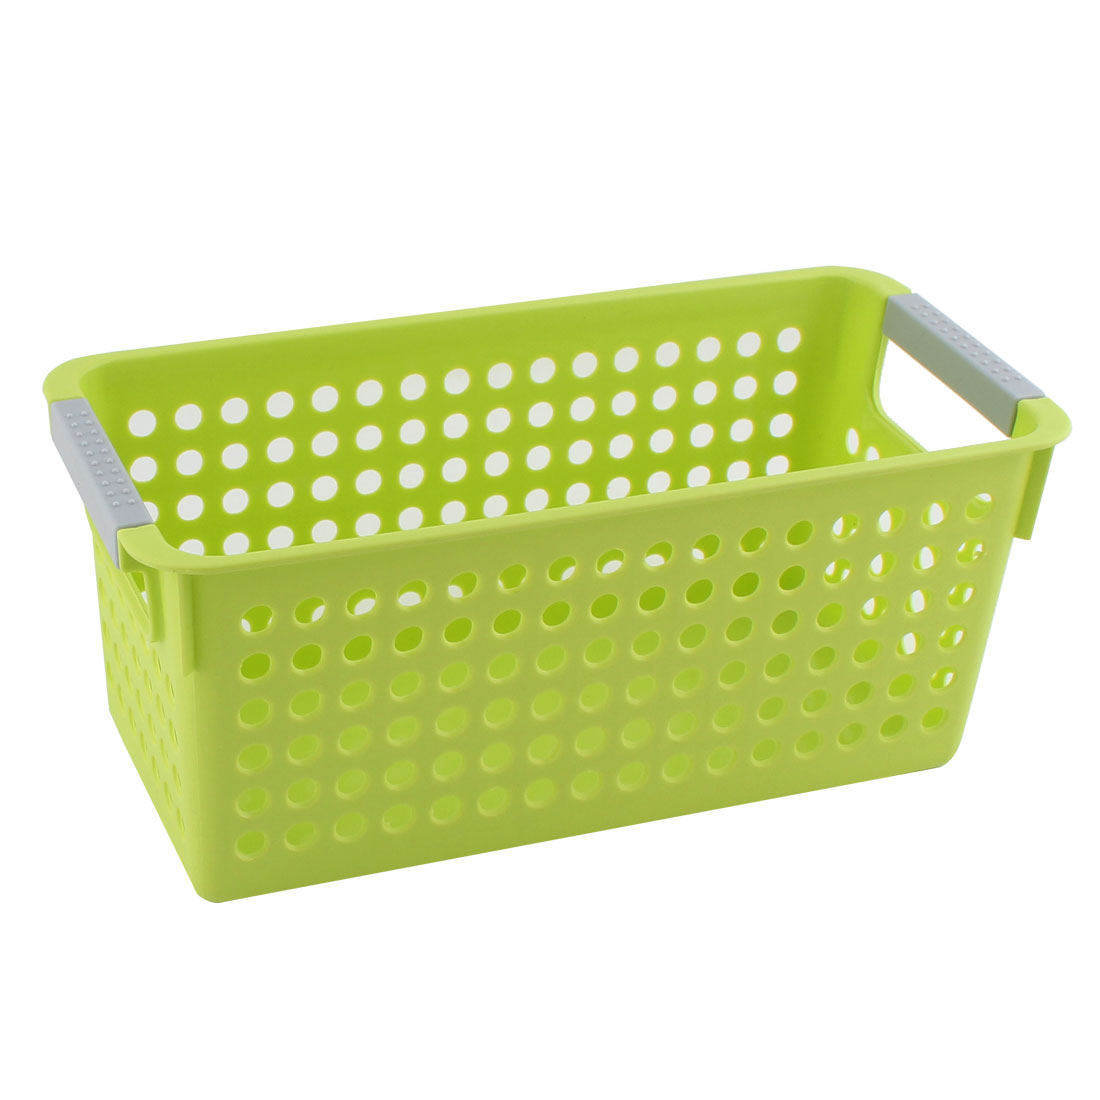 Unique Bargains Office Family Bathroom Plastic Rectangle Design Storage Basket Organizer Green